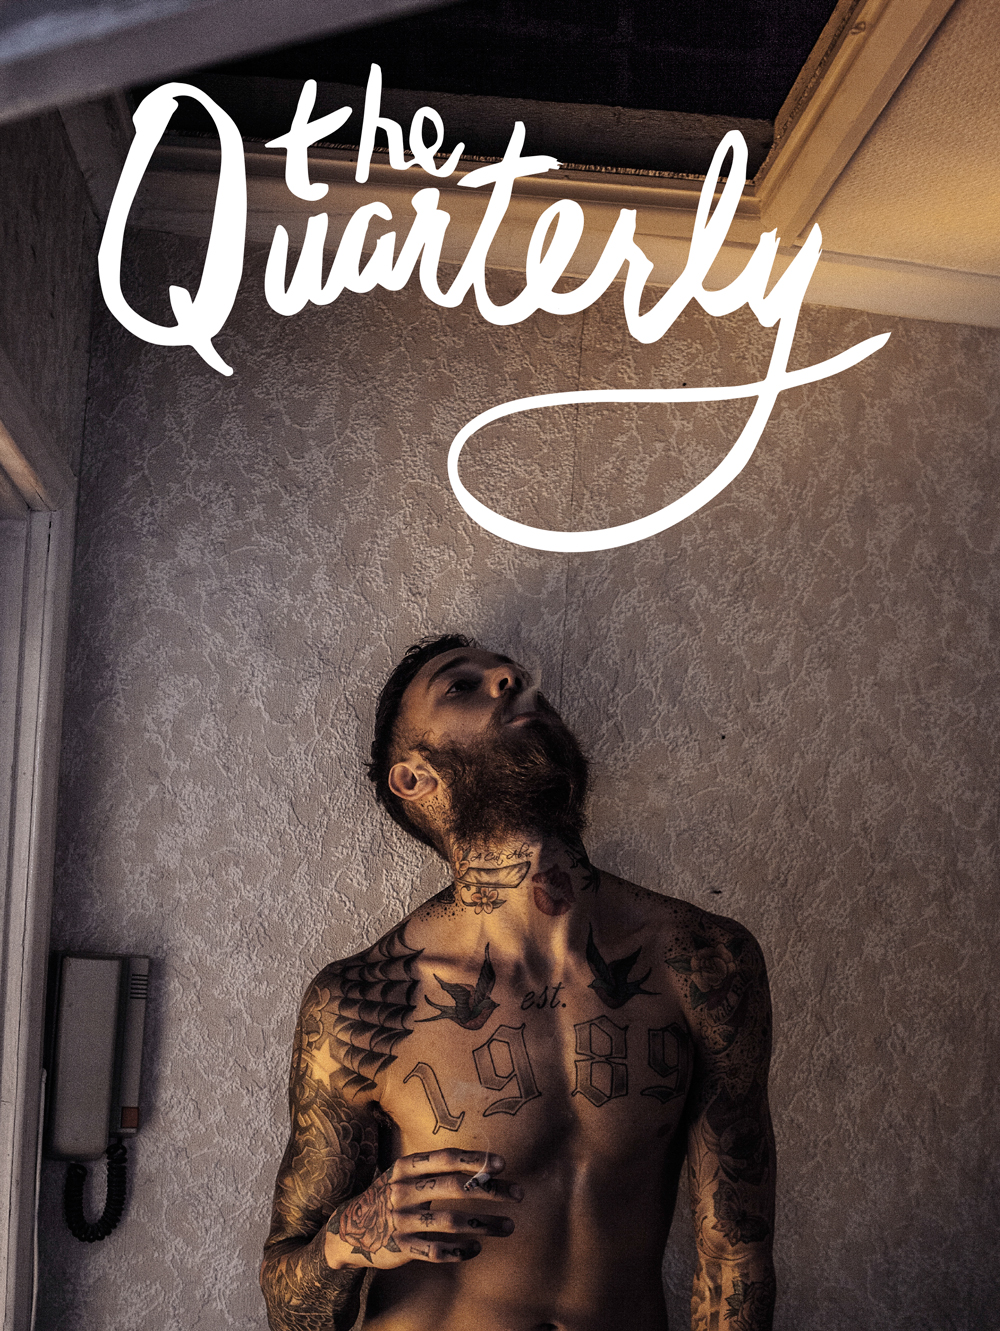 The Quarterly, Issue 2: Life and Culture   Featuring photography from Maud Chalard, Sharon Kim, Roo Lewis, ANTON, Mark Ivkovic, Annie Ling, Tom Johnson, Tim Hans, Nick Onken,Marc Pritchard,and writing from Naeem Alvi, Jace Kim, Christian Coleman, Stephen Dowling, Errol Clarke, Ivana McConnell, Noo Ridings, Alena Walker, Patrick McCullough.  144 Pages,250mm x 190mm No adverts. No filler.  Creativity without the Exploitation.